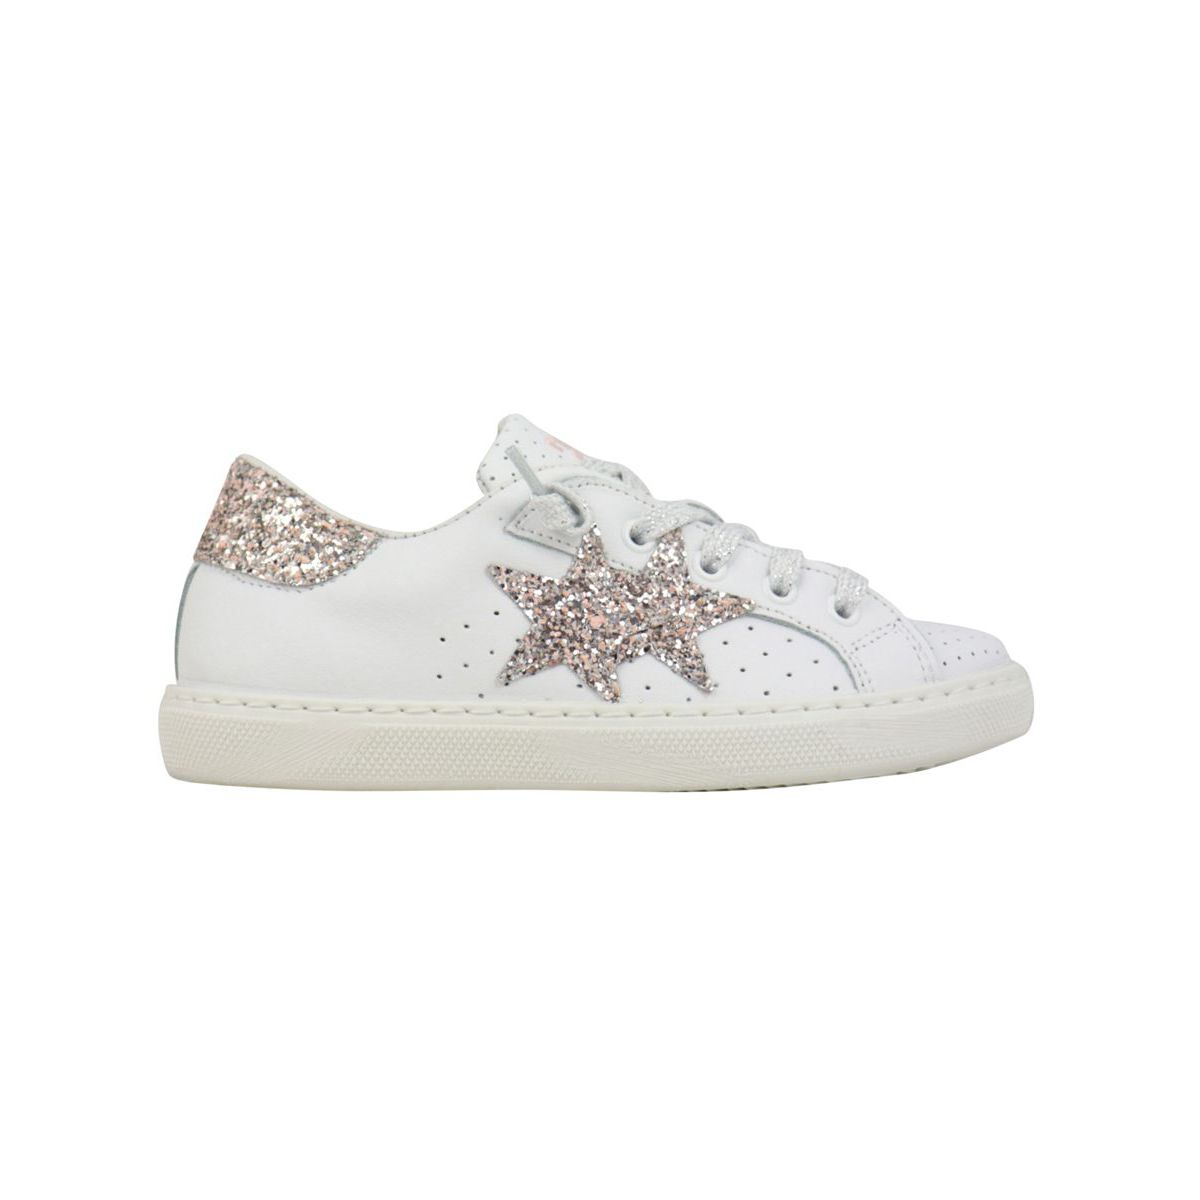 Cassette bottom sneakers with glitter details White / pink 2Star